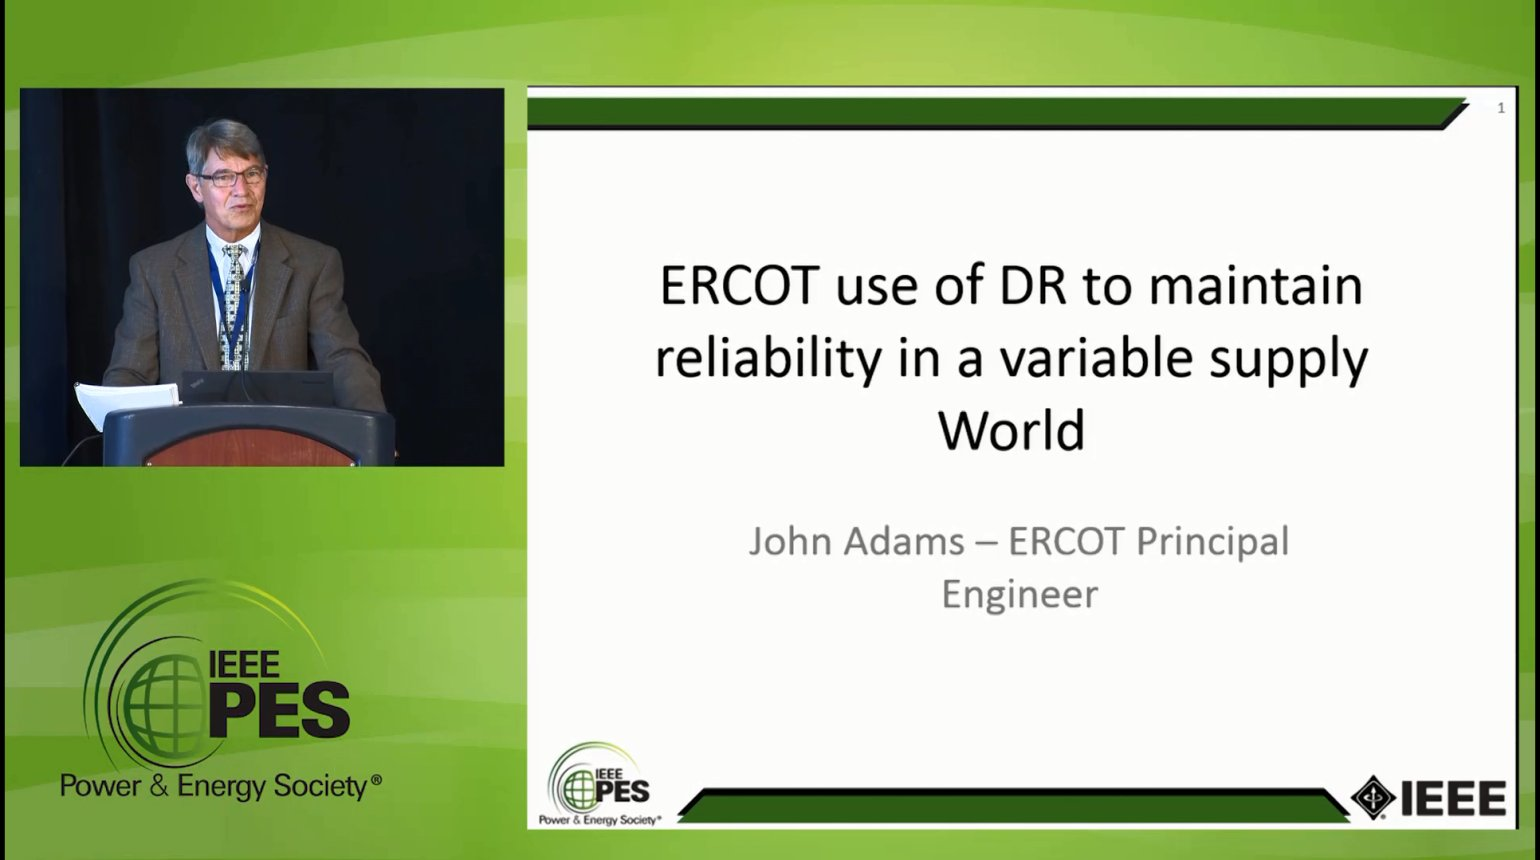 Managing Demand in a Variable Supply World - ERCOT use of DR to maintain reliability in a variable supply World (Video)